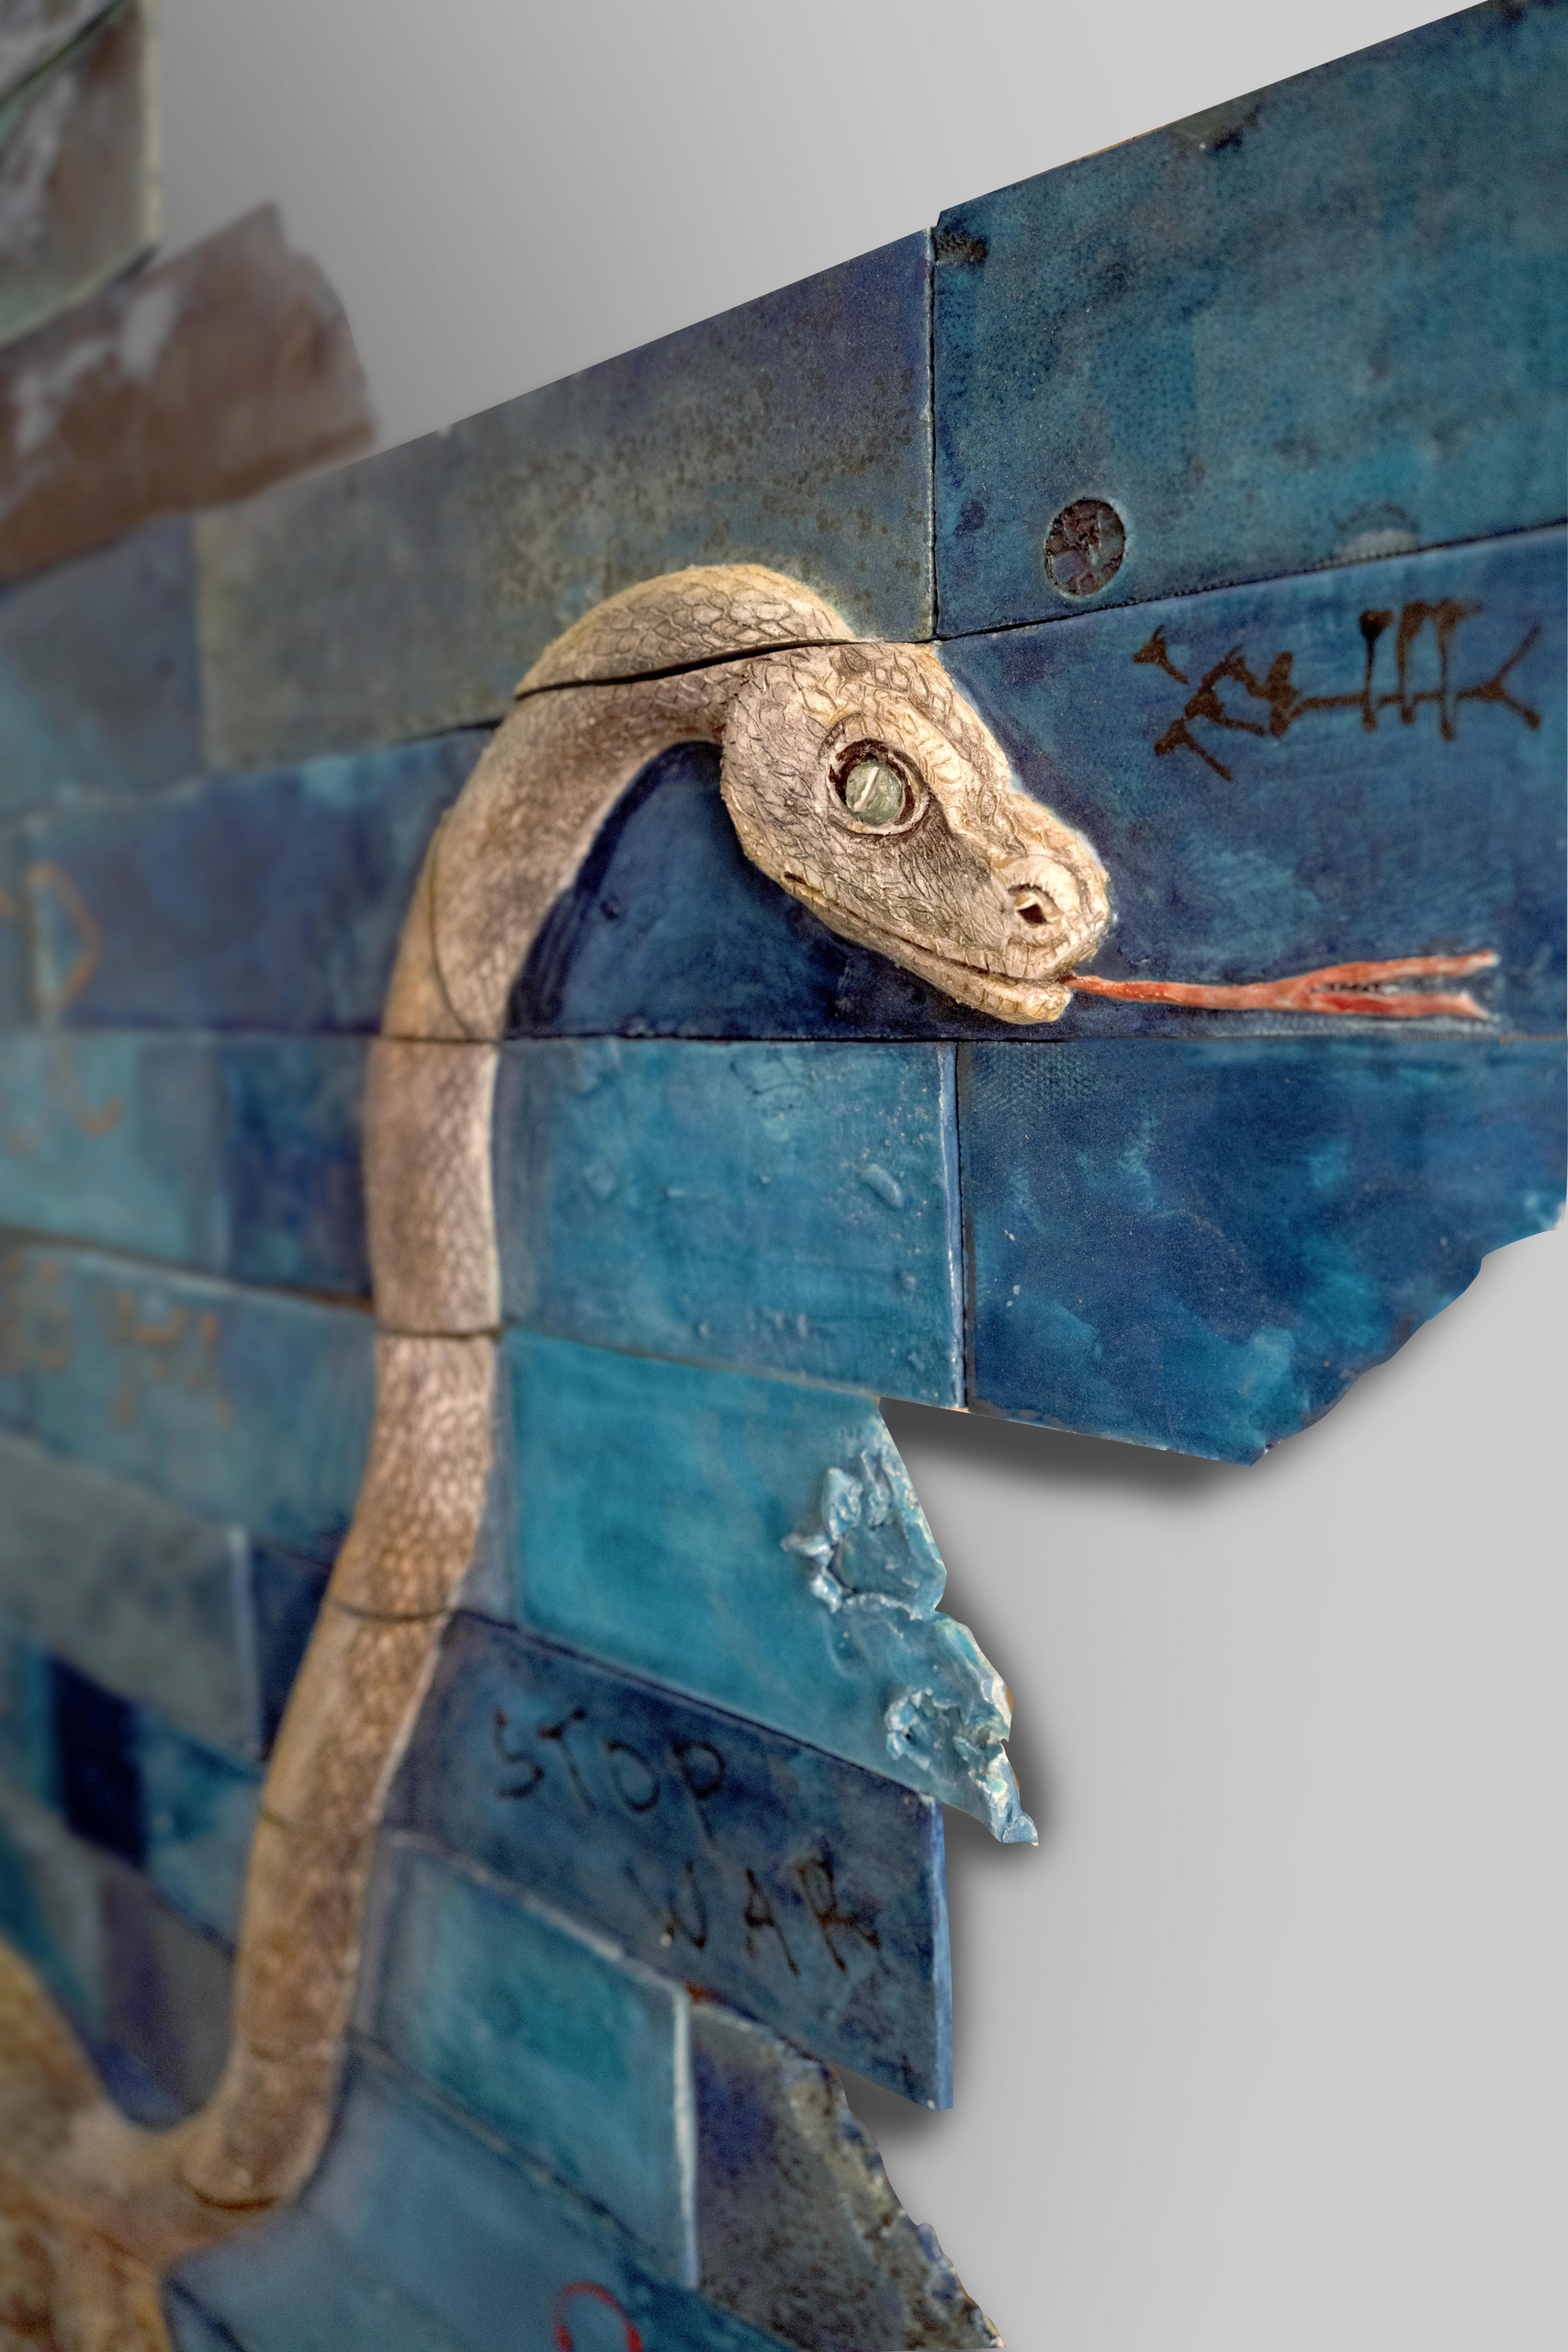 #Ruin's Riot: EXITIUM (fragment of the head of the snake)